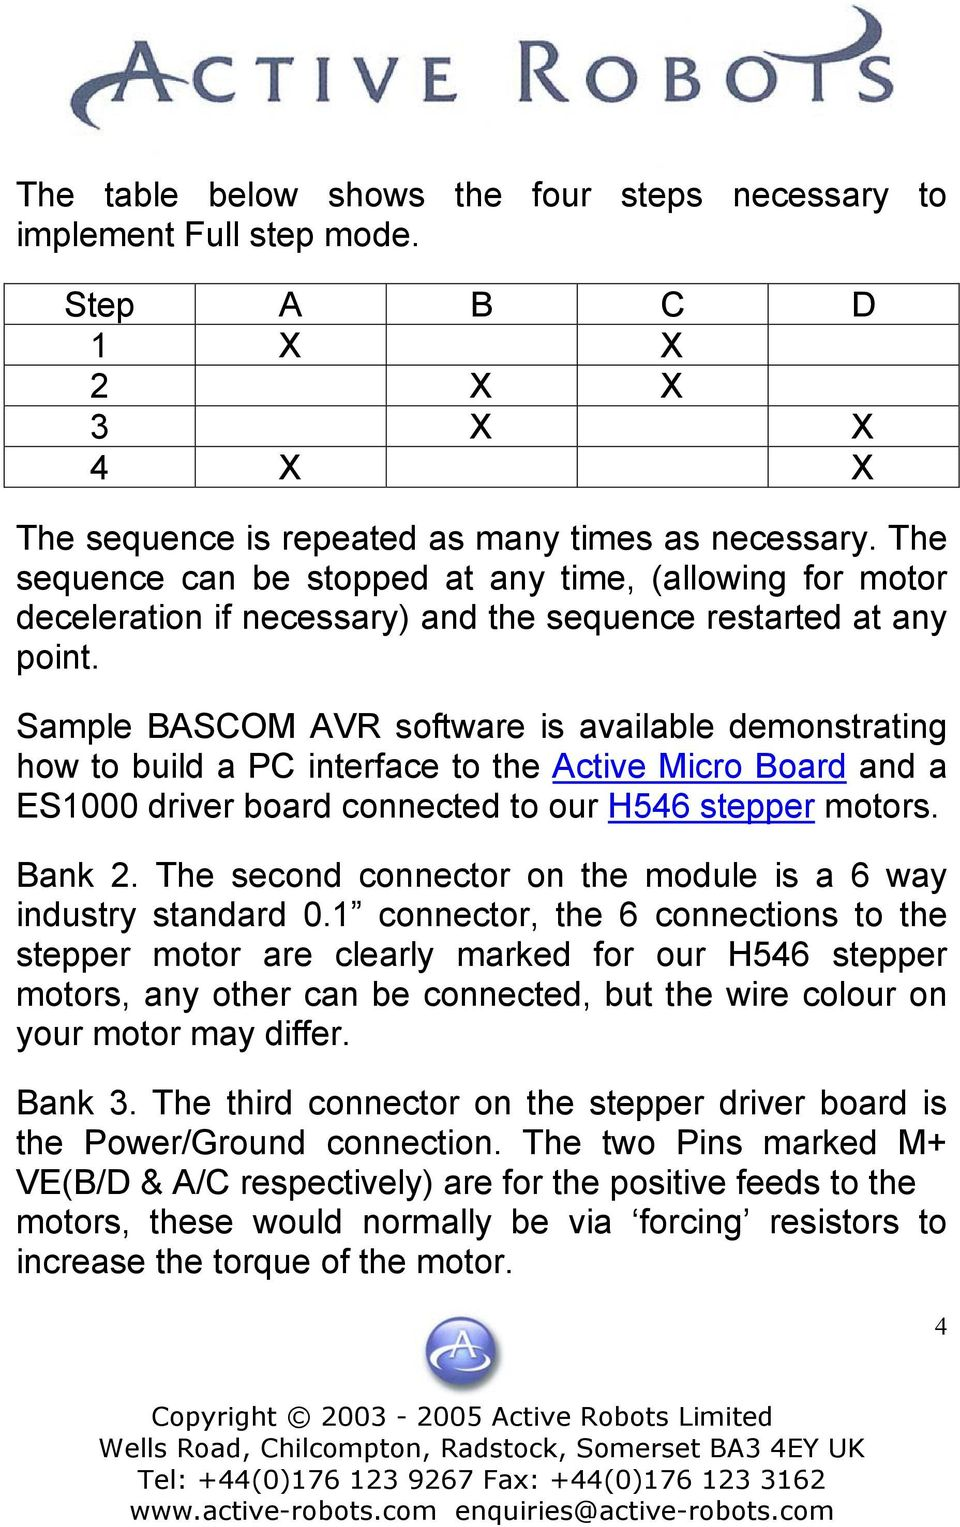 Sample BASCOM AVR software is available demonstrating how to build a PC interface to the Active Micro Board and a ES1000 driver board connected to our H546 stepper motors. Bank 2.